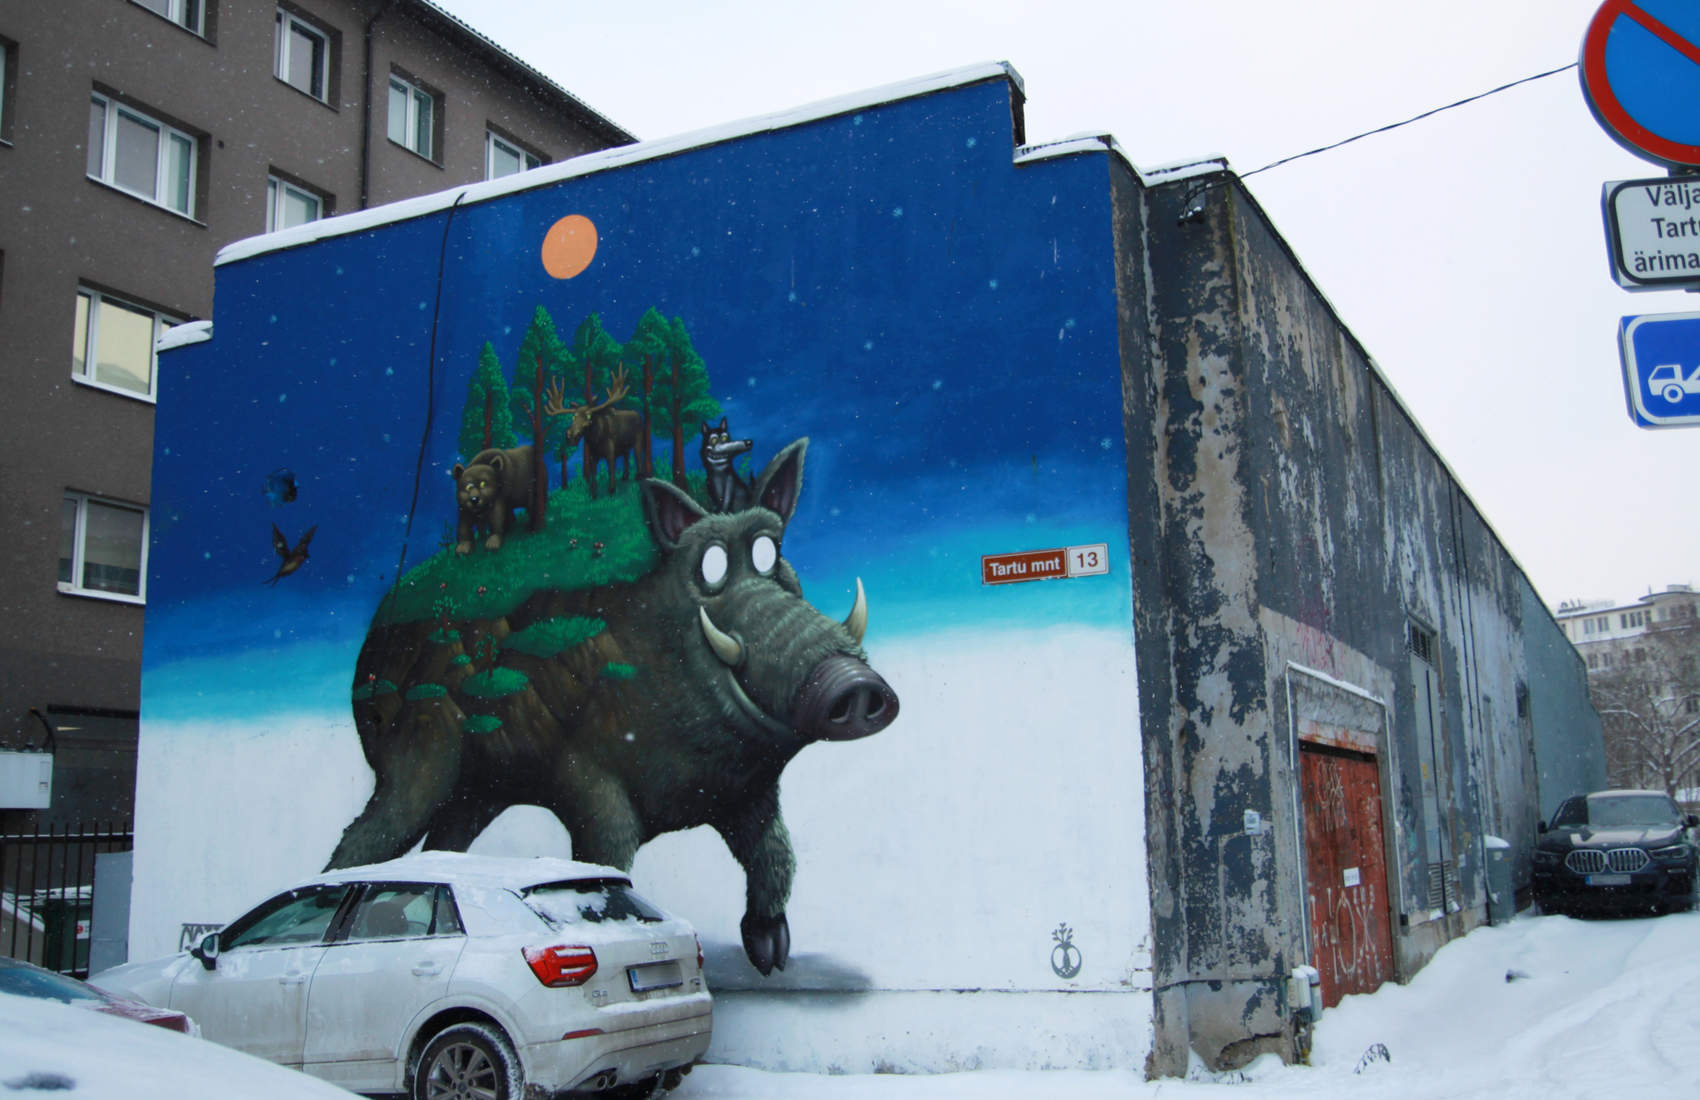 A fictional animal - street art by Goal in Tallinn, Estonia Photo: Mairit Krabbi